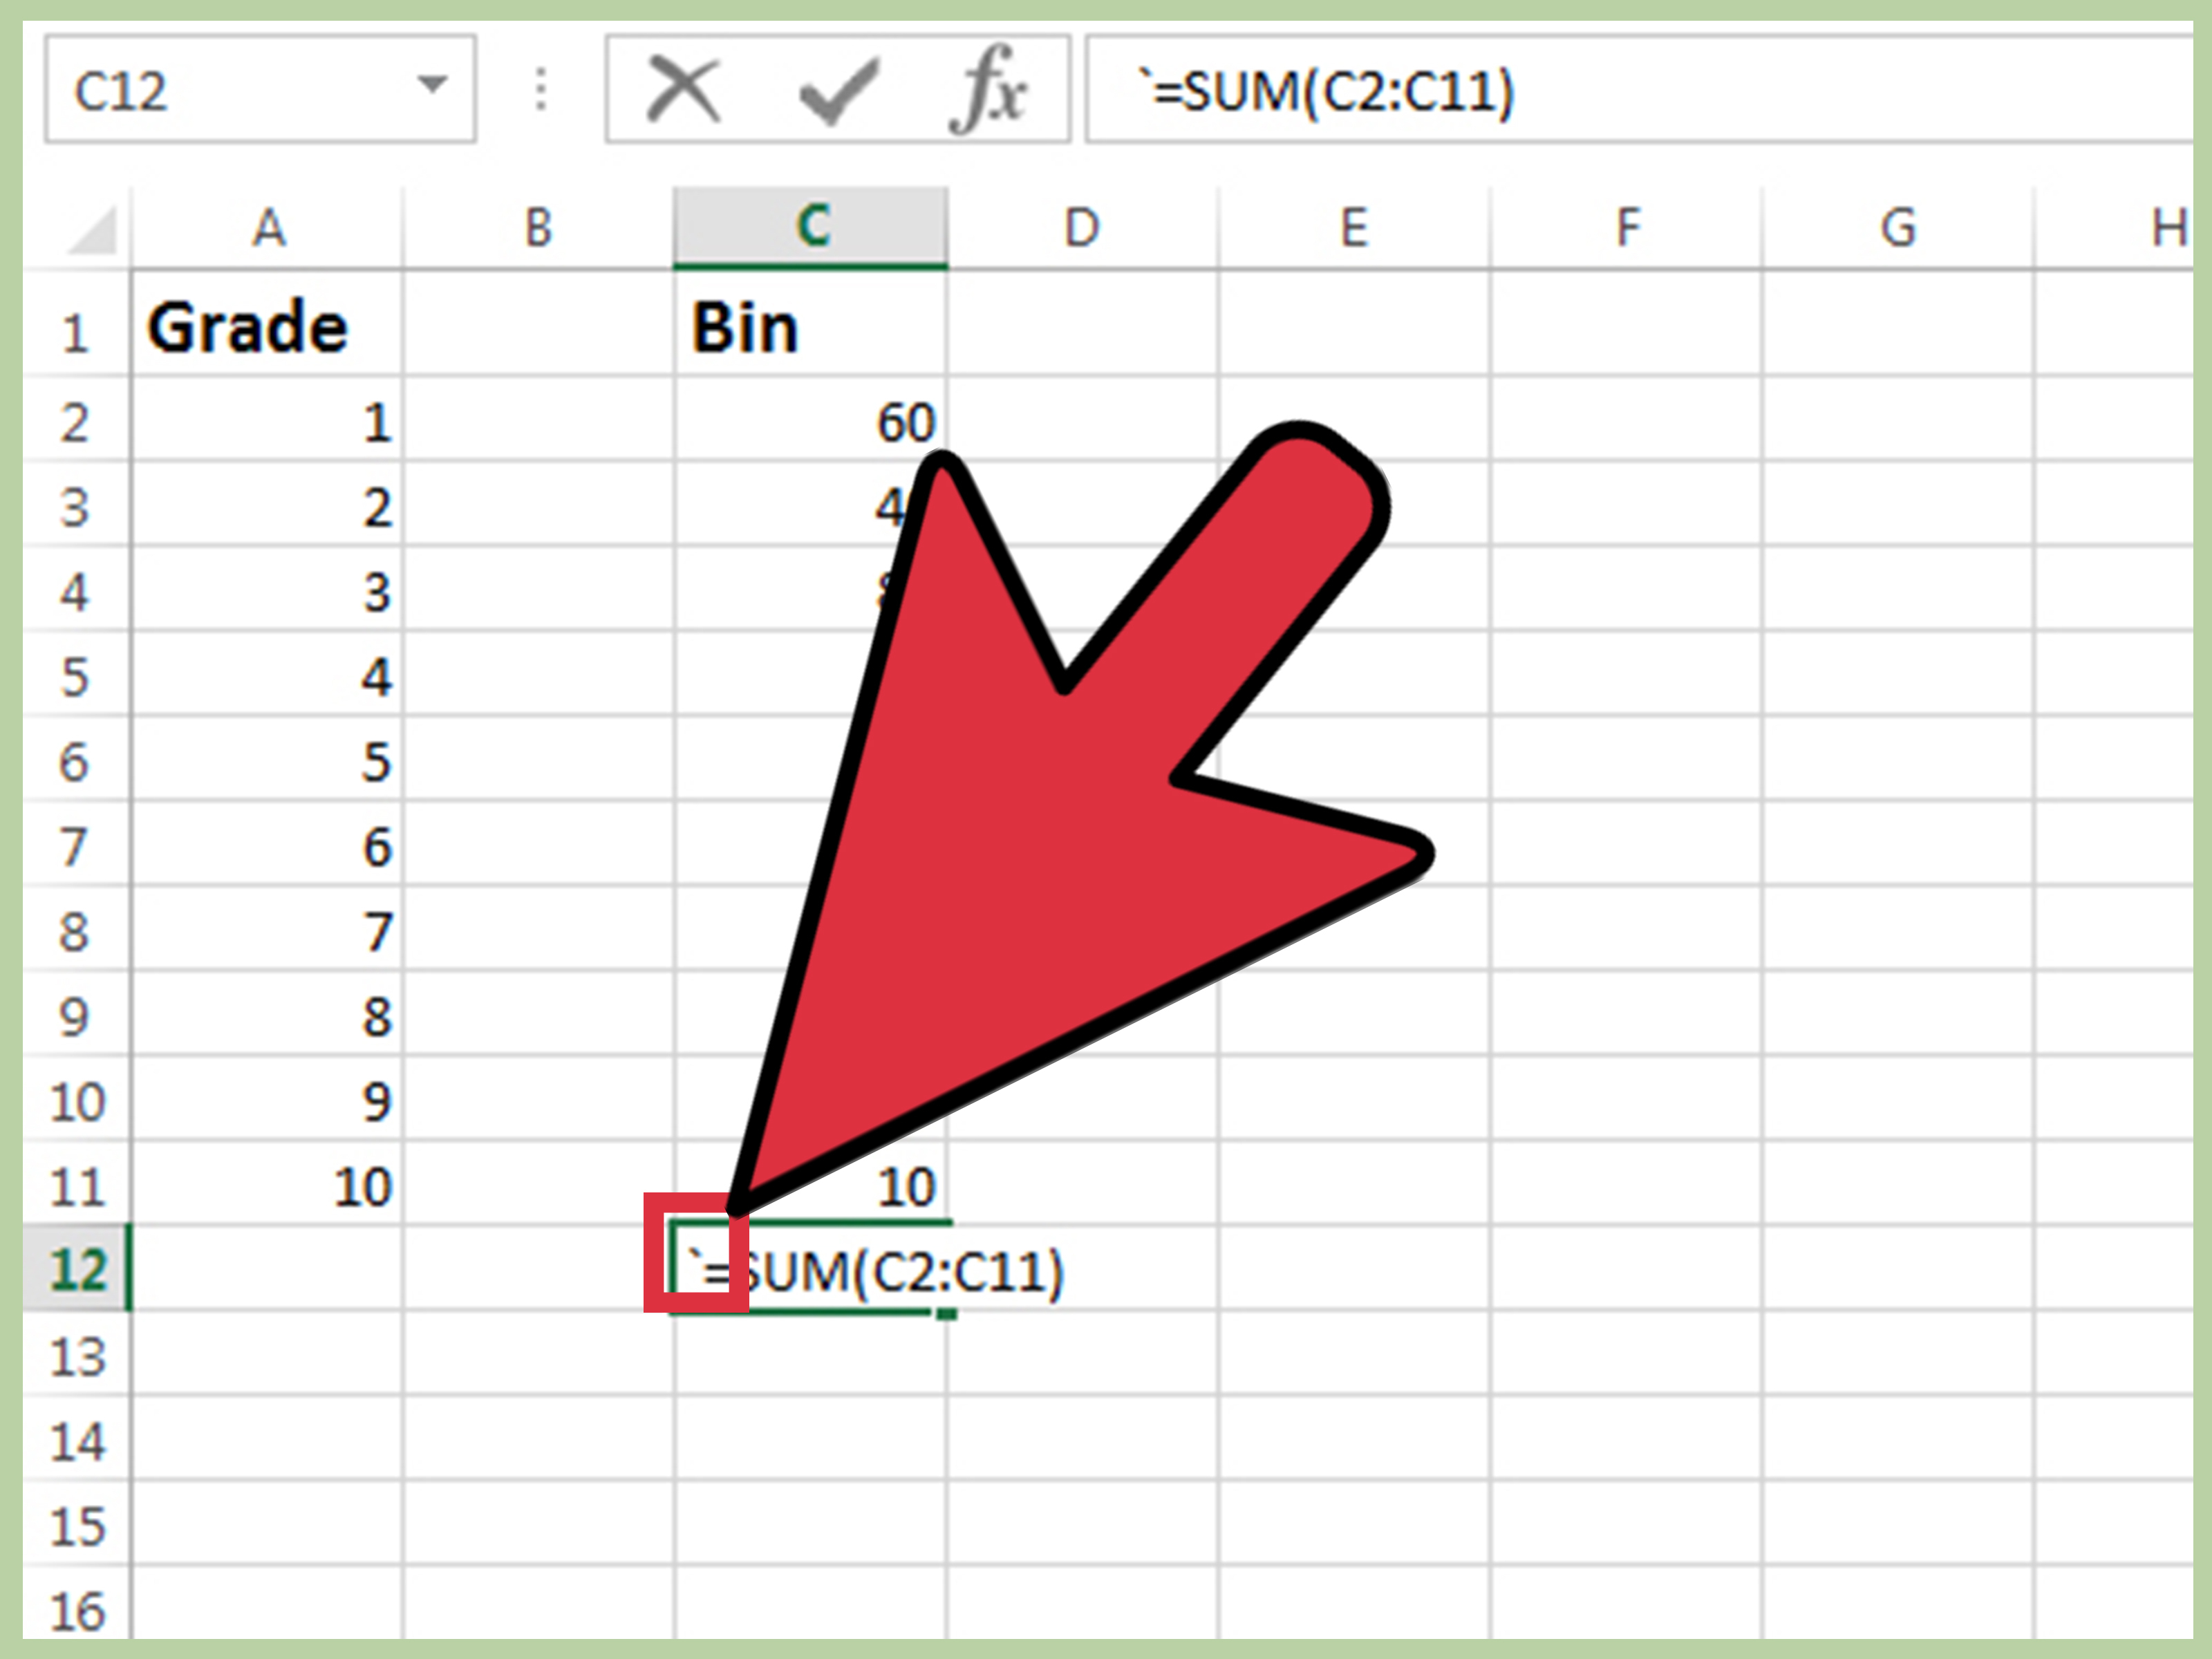 How To Build An Excel Spreadsheet In 3 Ways To Print Cell Formulas Used On An Excel Spreadsheet